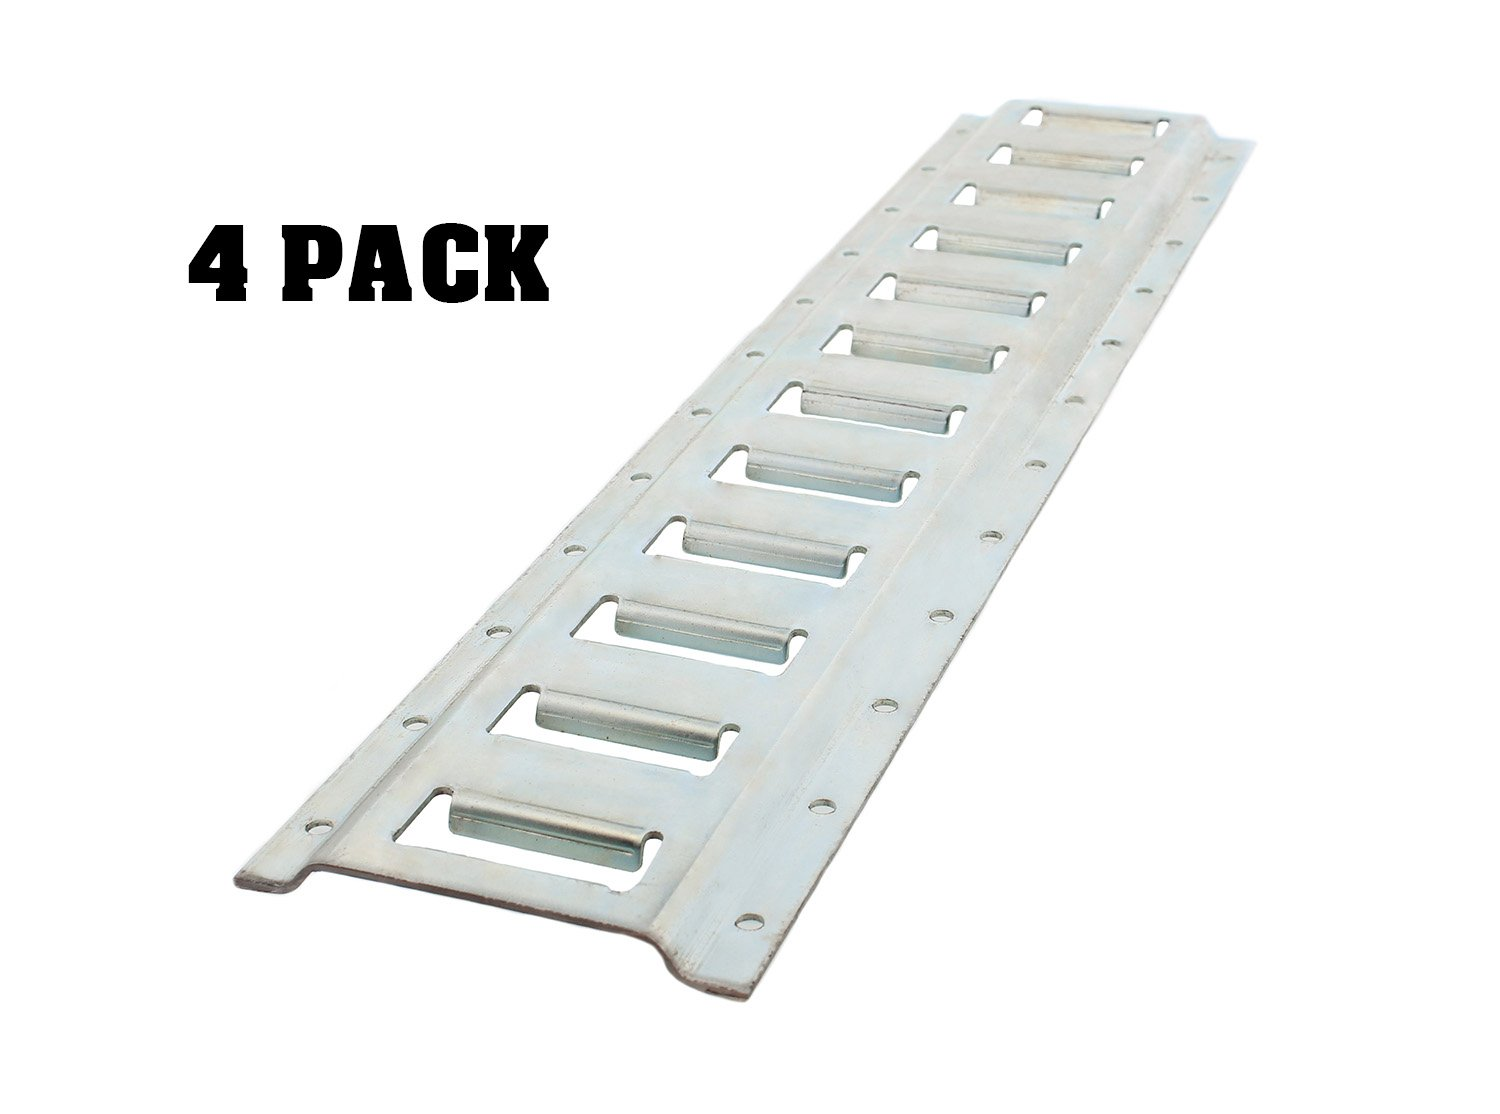 ABN 2' Foot Galvanized Horizontal E-Track Zinc Plated 4-Pack – Tie down Rail for Securing Cargo Auto Body Now 4336326041